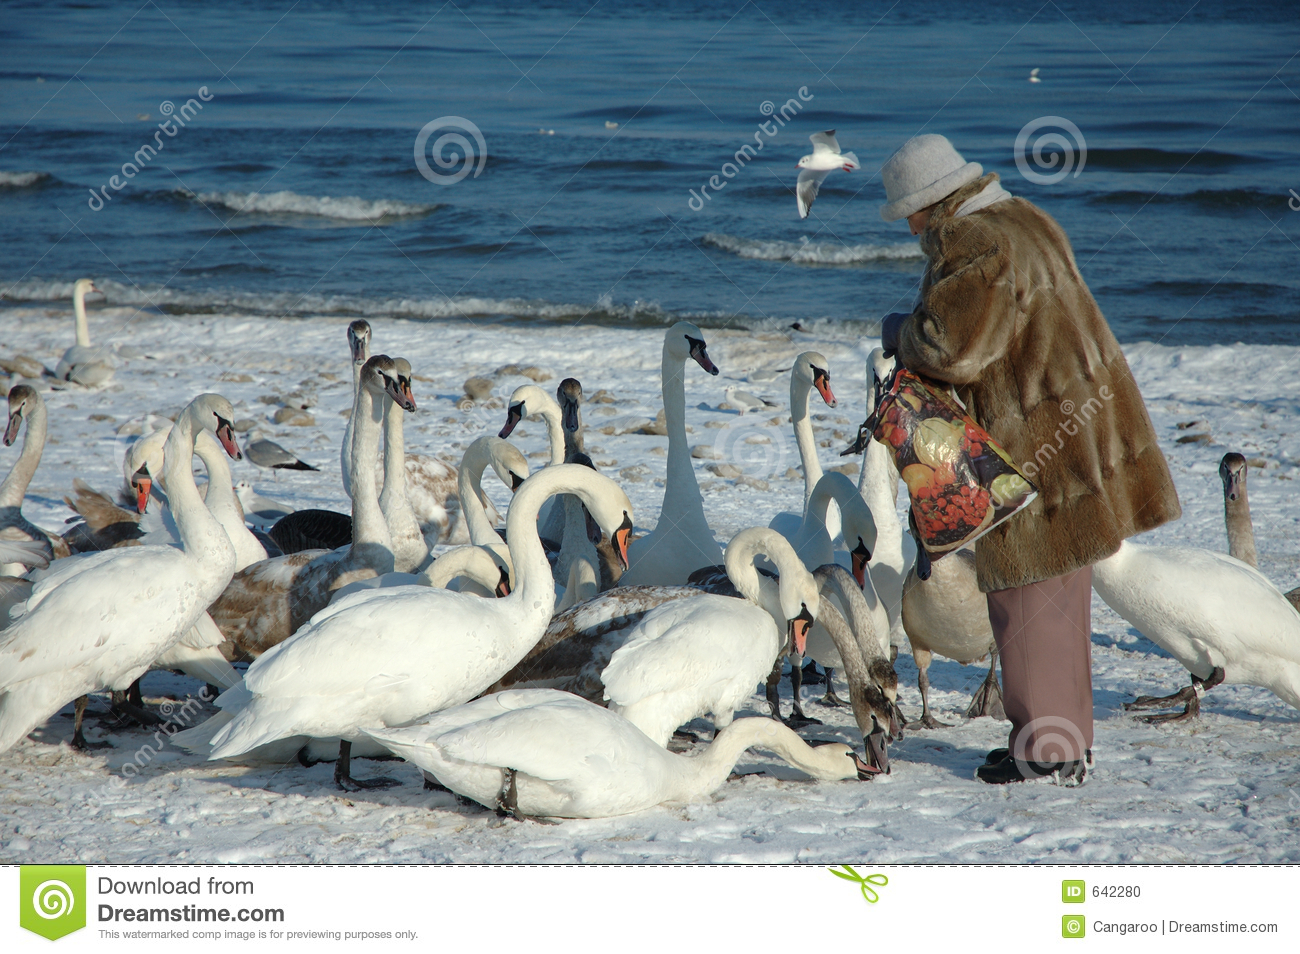 Woman is feeding the swans